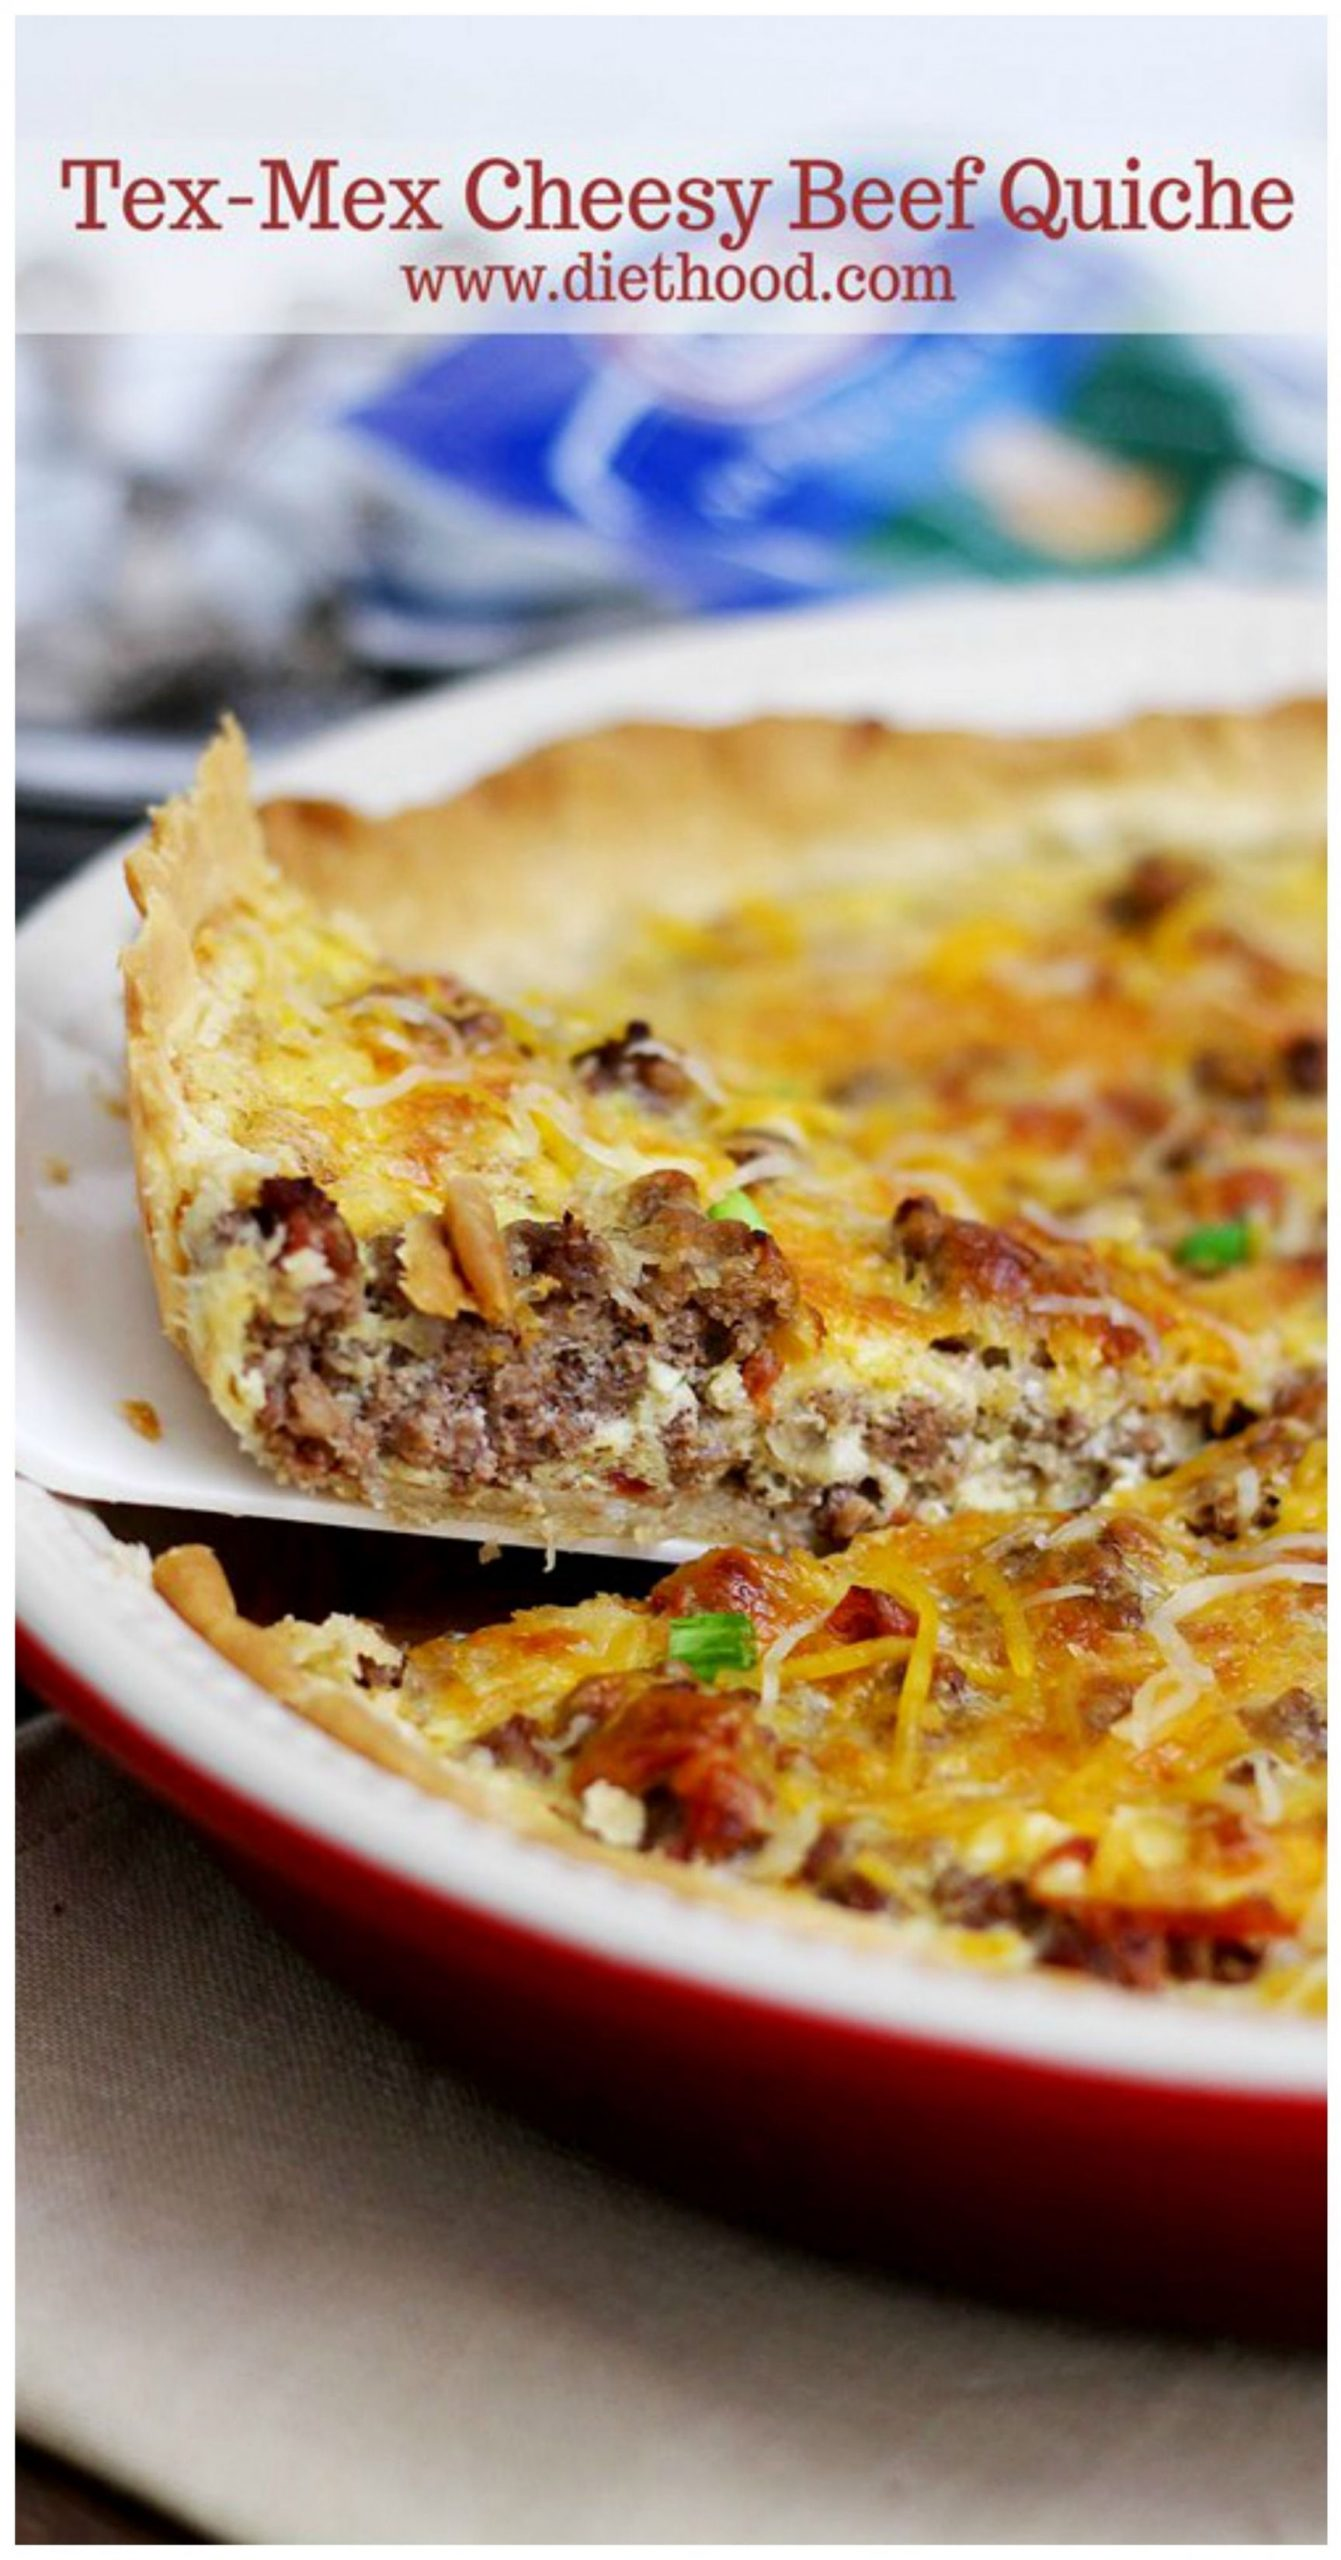 Southwest} This Tex-Mex Cheesy Beef Quiche is a great weeknight ..